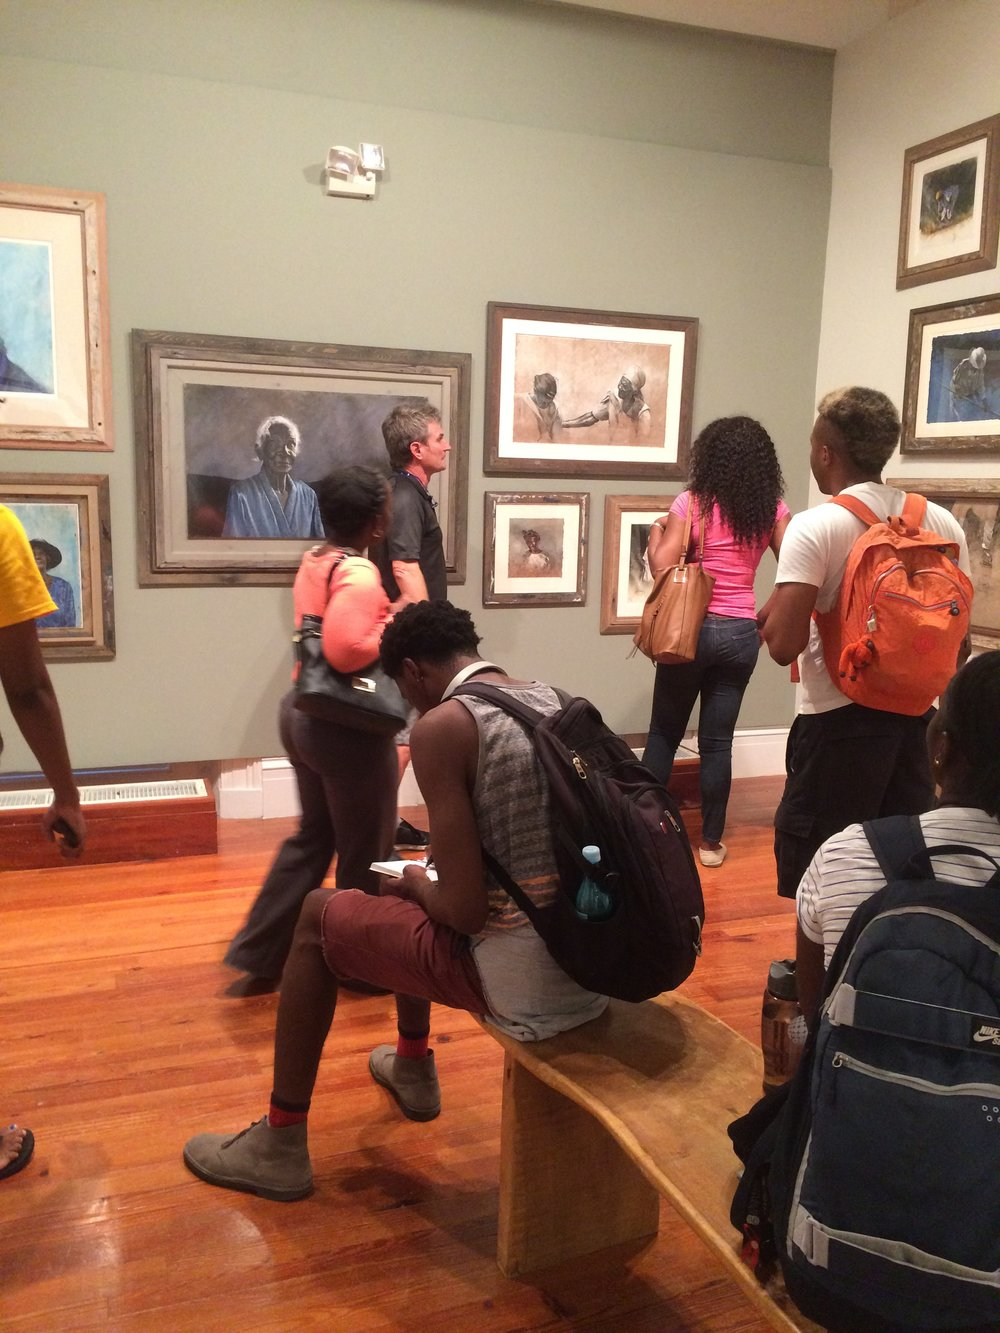 "University of The Bahamas students visit Thierry Lamare's ""Love, Loss and Life"" on view at the National Art Gallery of The Bahamas and receive a guided tour by the artist. Students ask questions and take notes of the images on view."